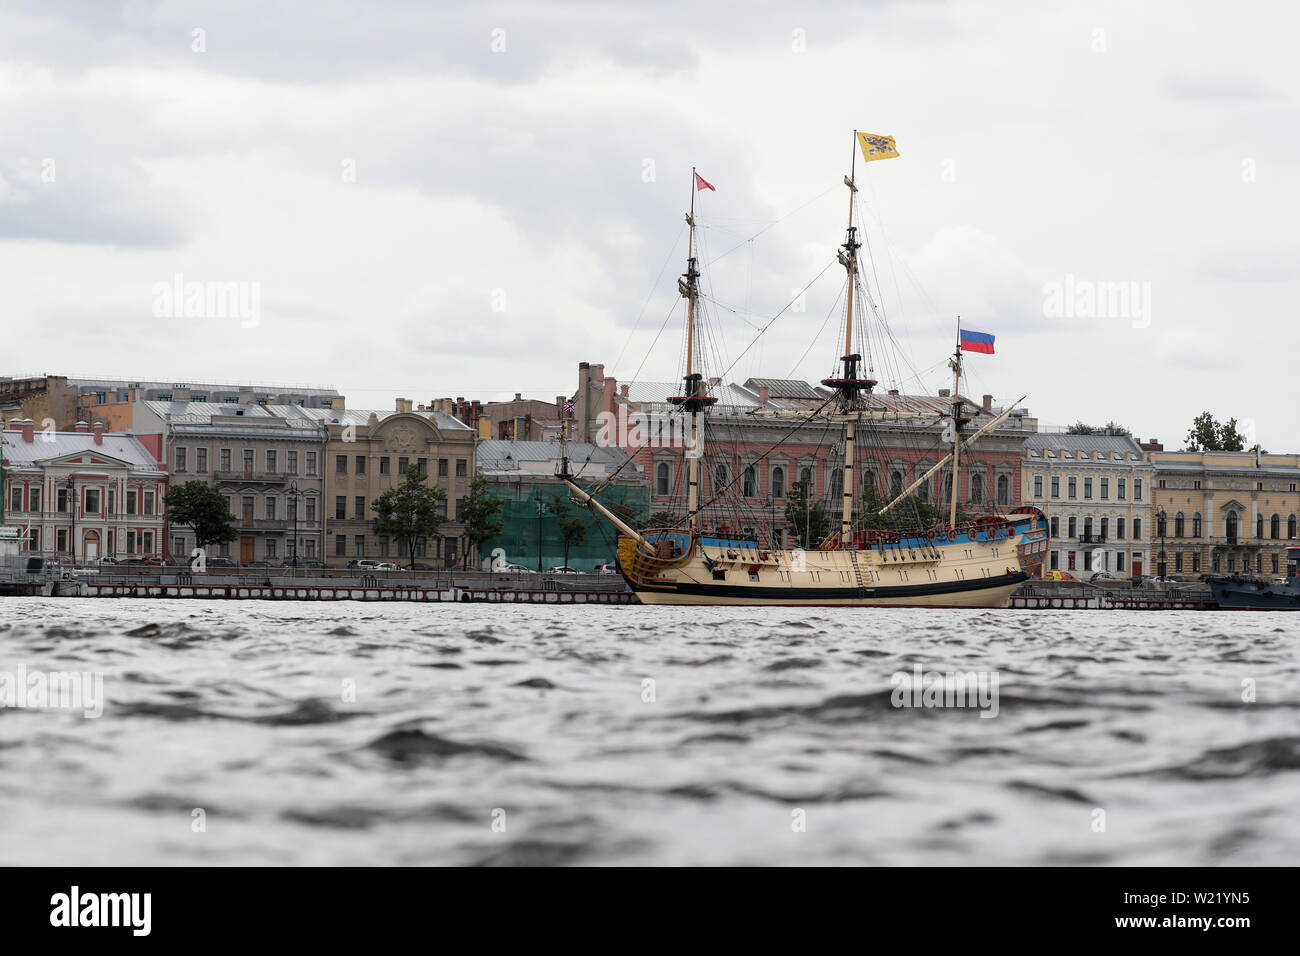 St Petersburg, Russia. 05th July, 2019. ST PETERSBURG, RUSSIA - JULY 5, 2019: A replica of the Poltava, the first ship of the line of the Russian Baltic Fleet that was launched in 1712, berthing by Angliyskaya Embankment. Peter Kovalev/TASS Credit: ITAR-TASS News Agency/Alamy Live News Stock Photo